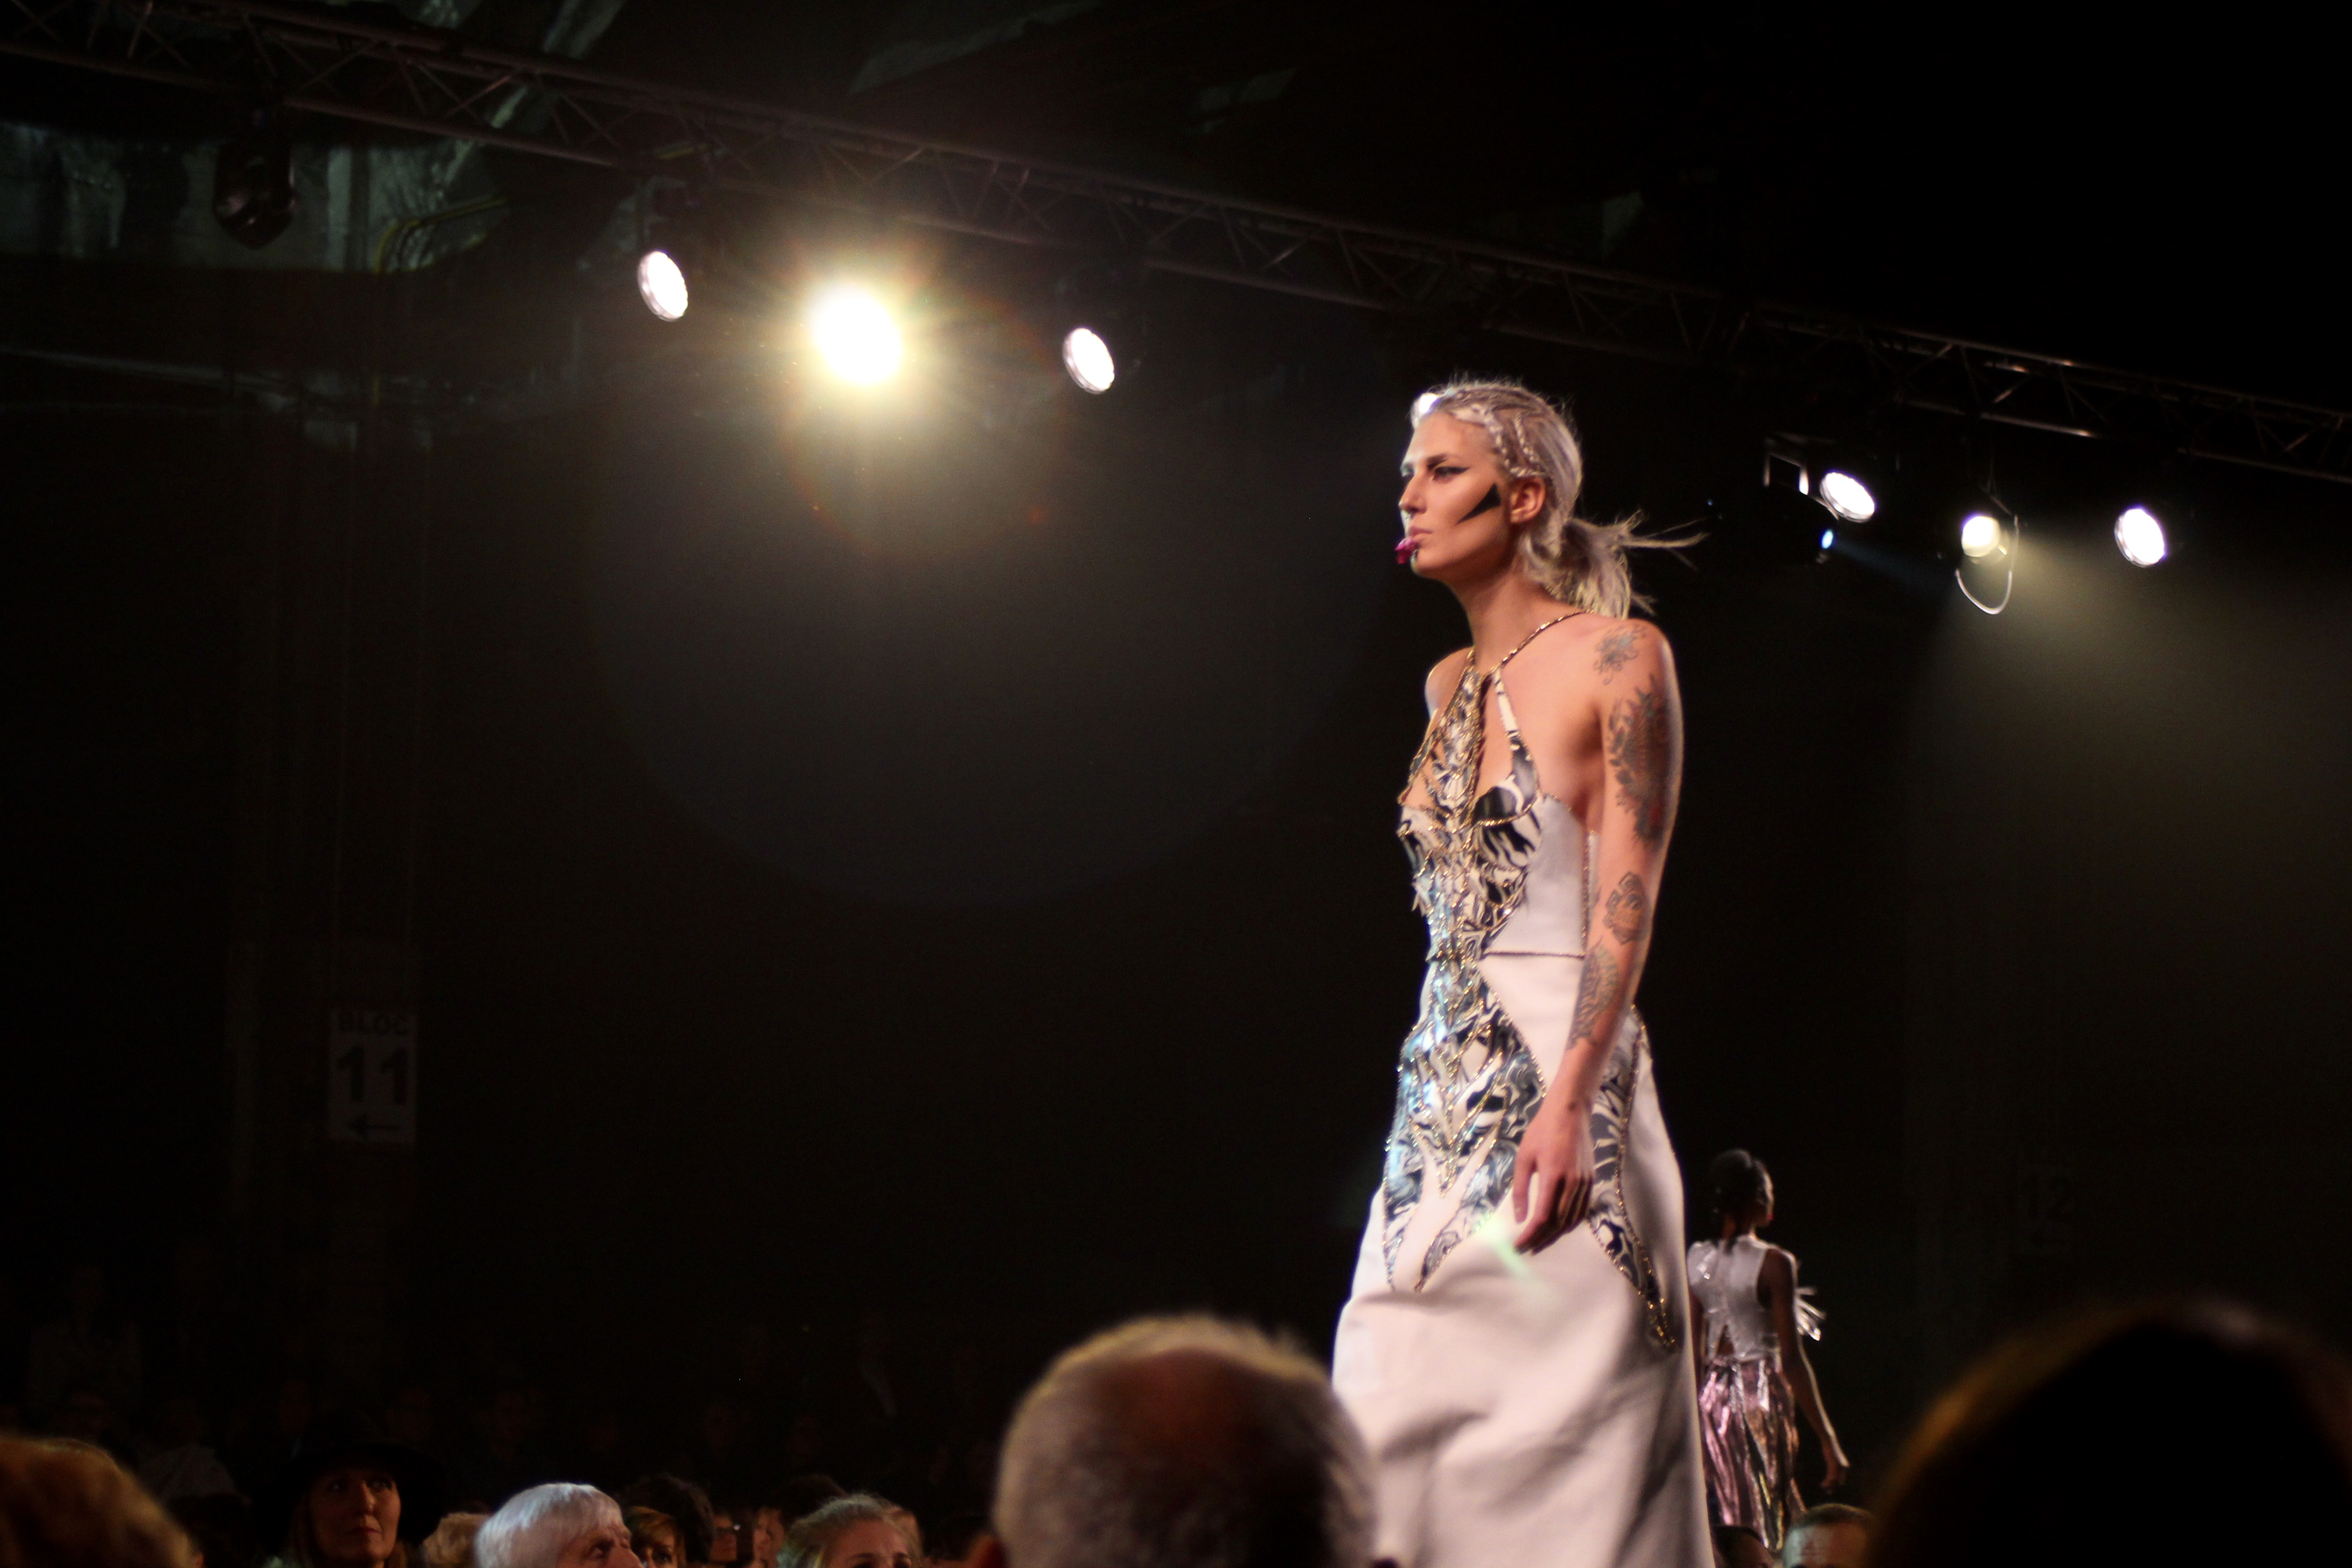 lux fashion week - Feyrouz Ashoura